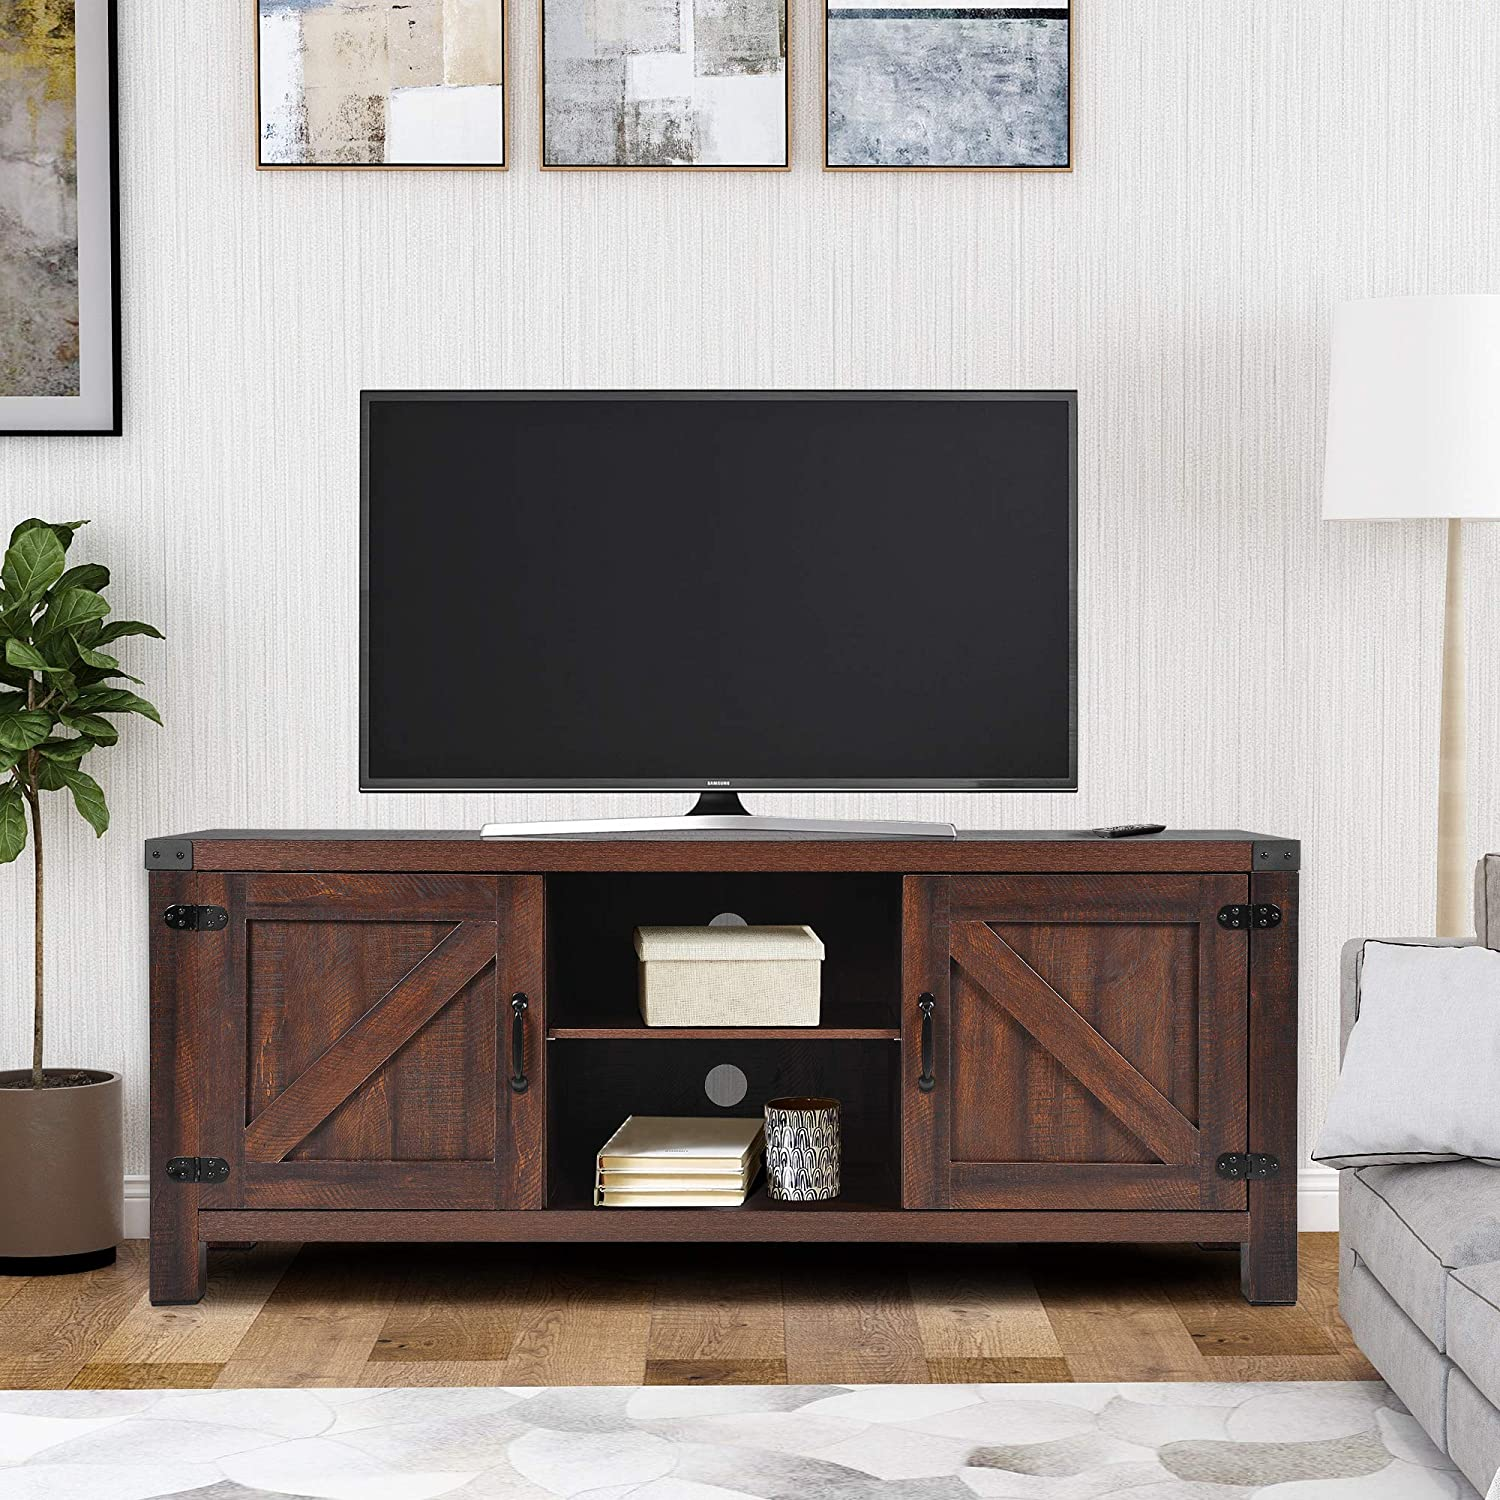 LENTIA 58 Inch Barn Door TV Stand for TVs up to 65 , TV Media Stand Table Entertainment Center Media Console with Adjustable 3 Layer Shelves, Brown Wood Grain